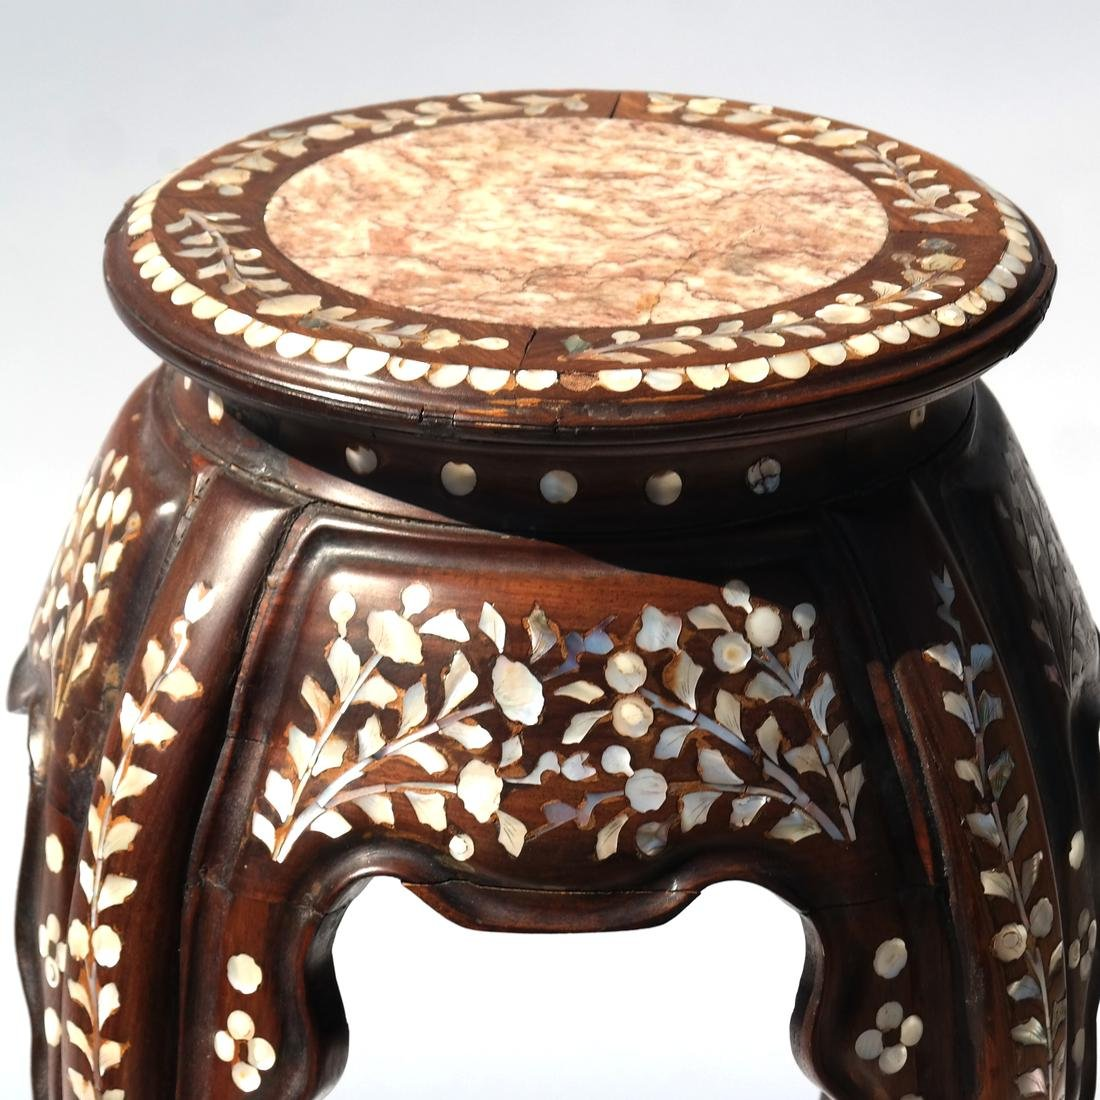 Indo-Chinese Marble Top Table/Pedestal - 2